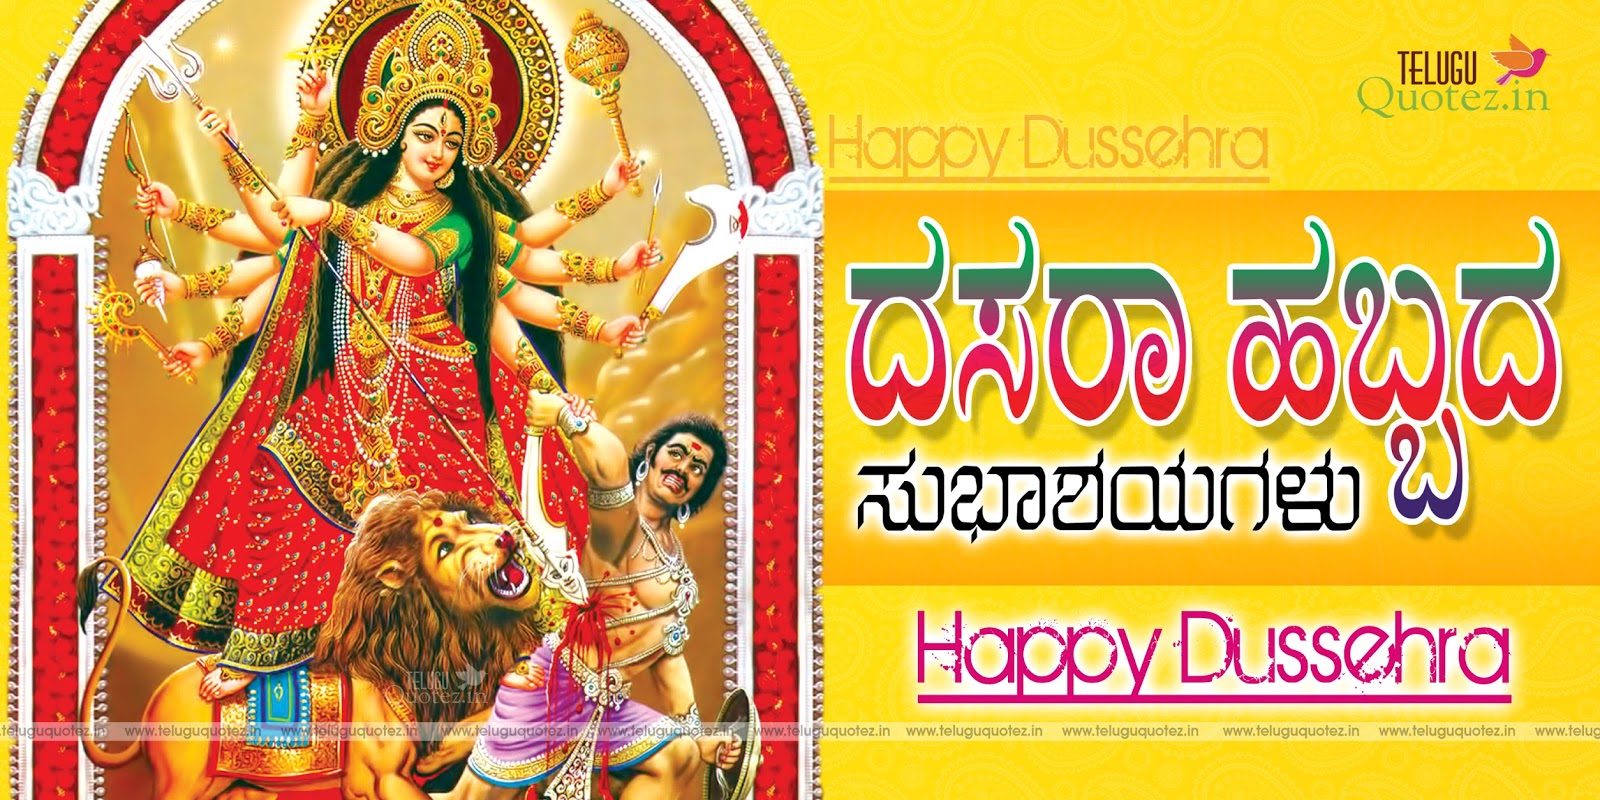 Latest happy dussehra kannada greetings and quotes teluguquotez happy dussehra kannada kavanagal quotes and greetings teluguquotez kristyandbryce Choice Image